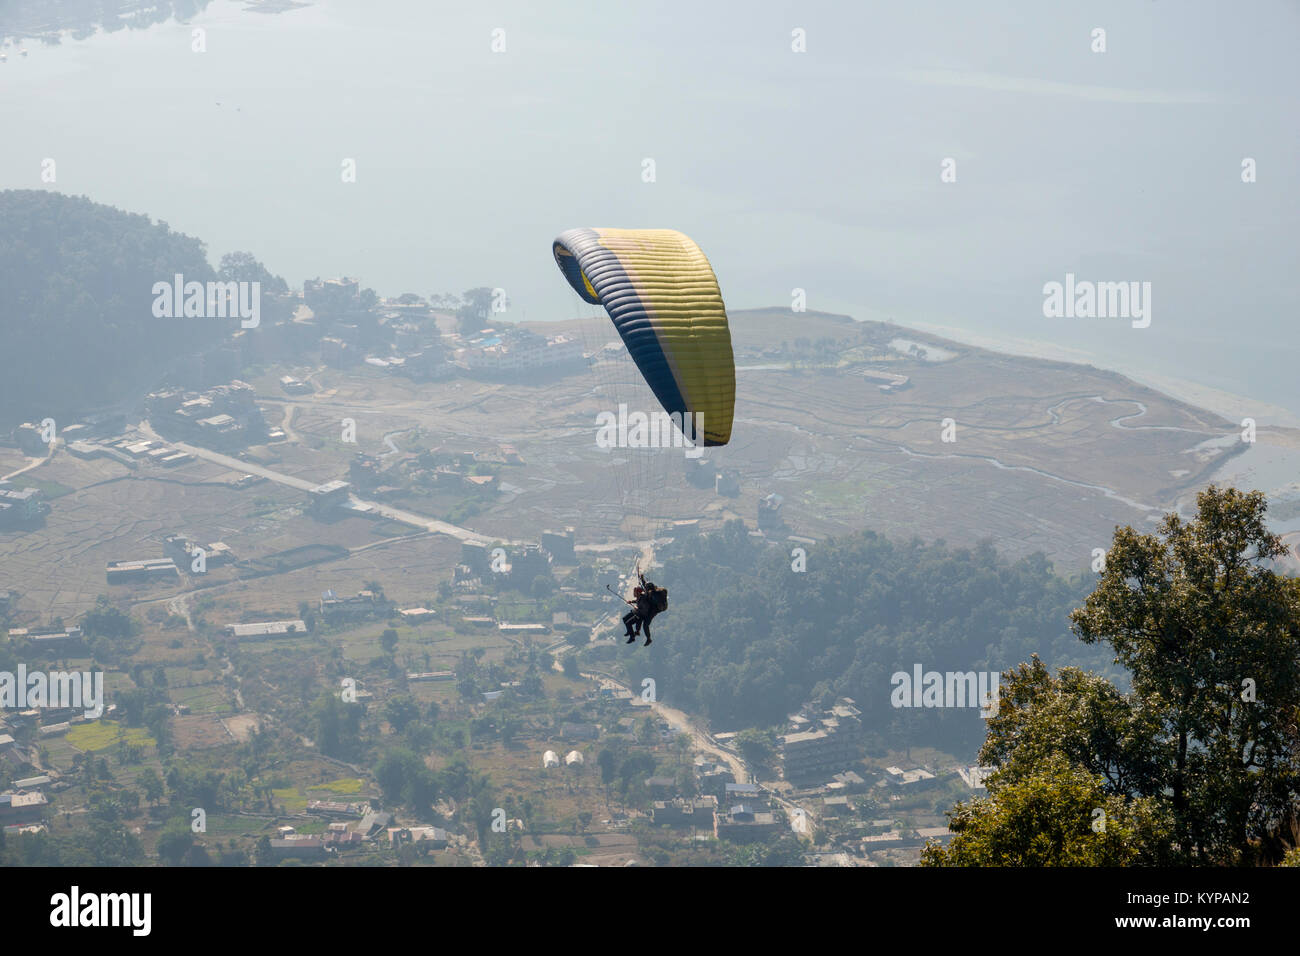 Tandem paragliding at Sarankot over Phewa Lake, Pokhara, Nepal - Stock Image